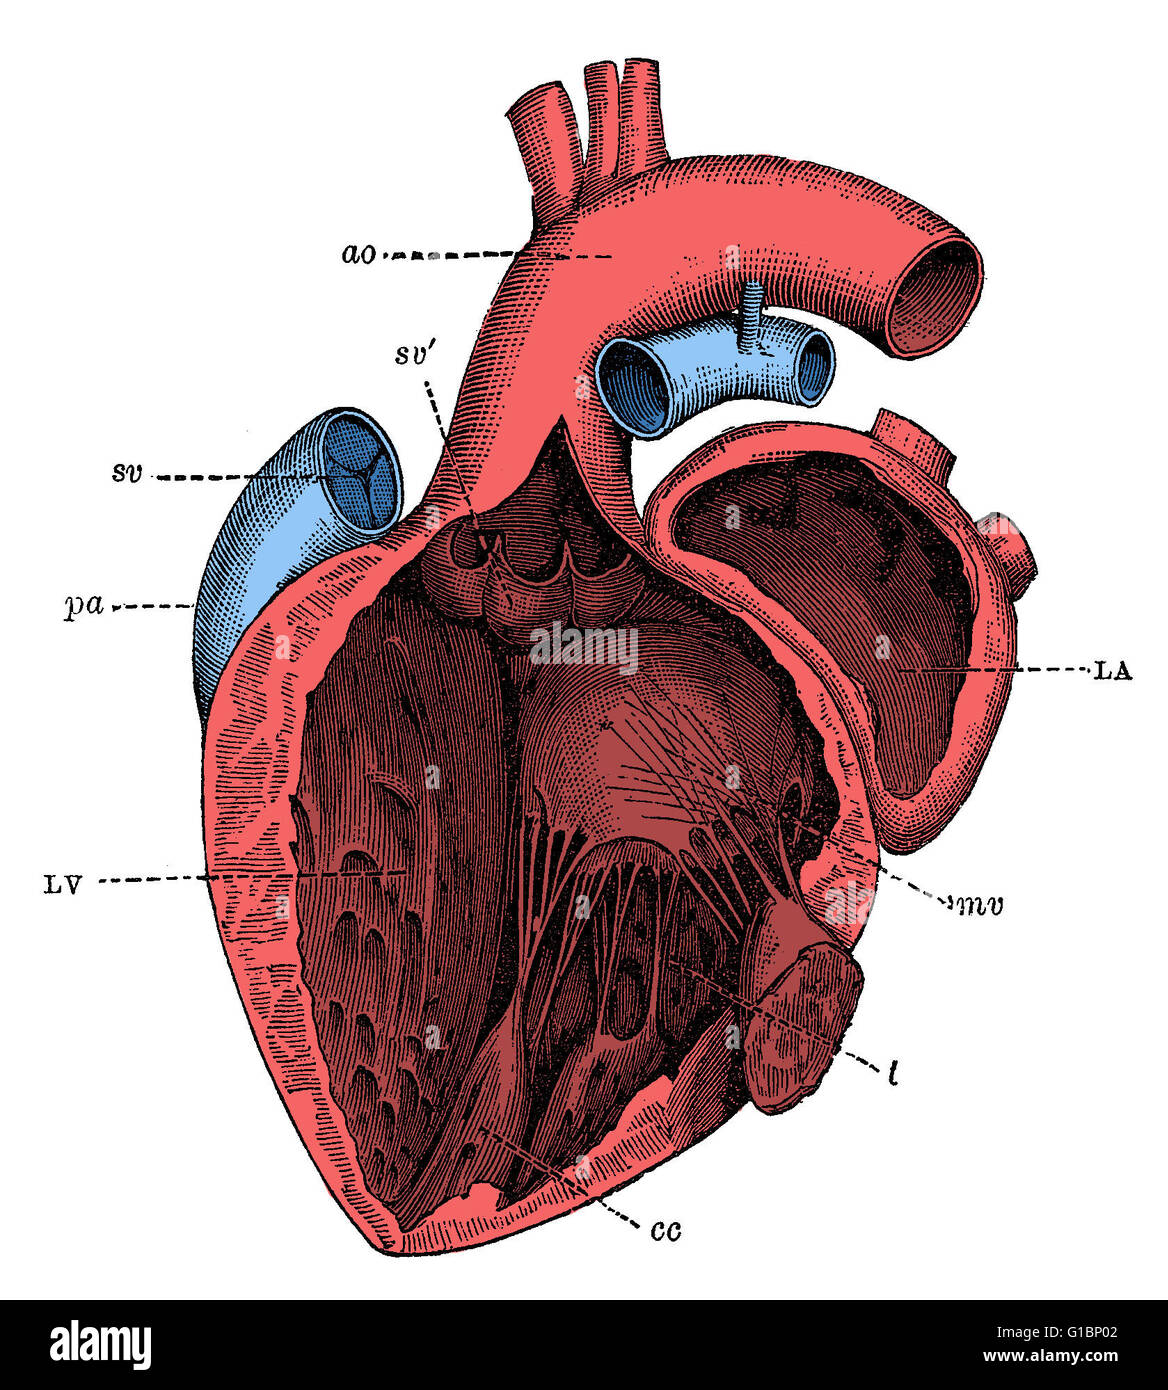 Dissection Of The Left Side Of A Humans Heart Showing Valves This